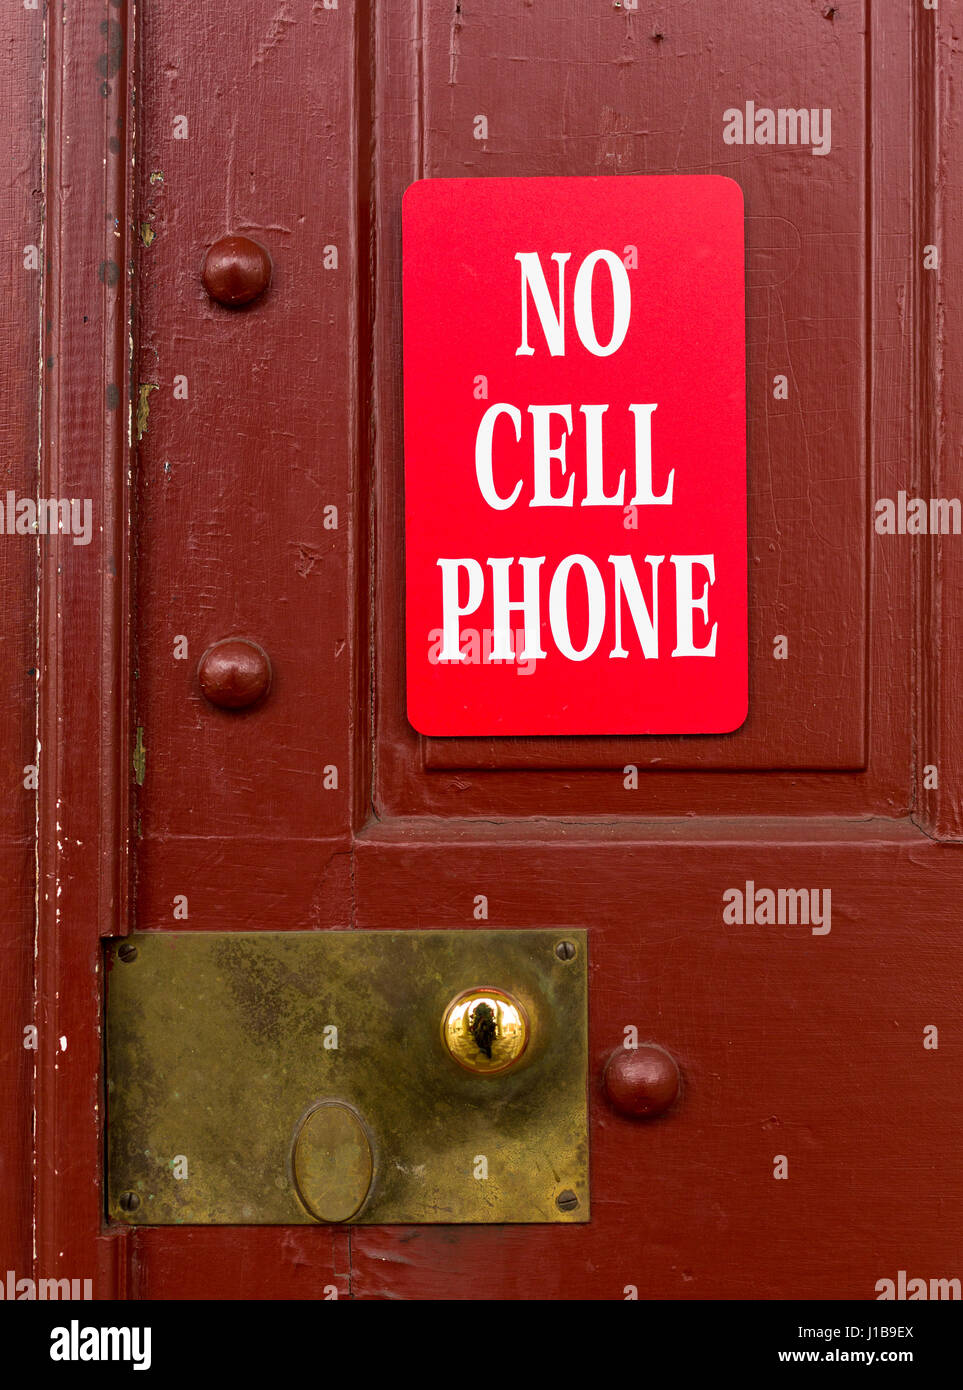 Sign on a door warning that no cell phone, smartphone or wireless phone usage is allowed - Stock Image